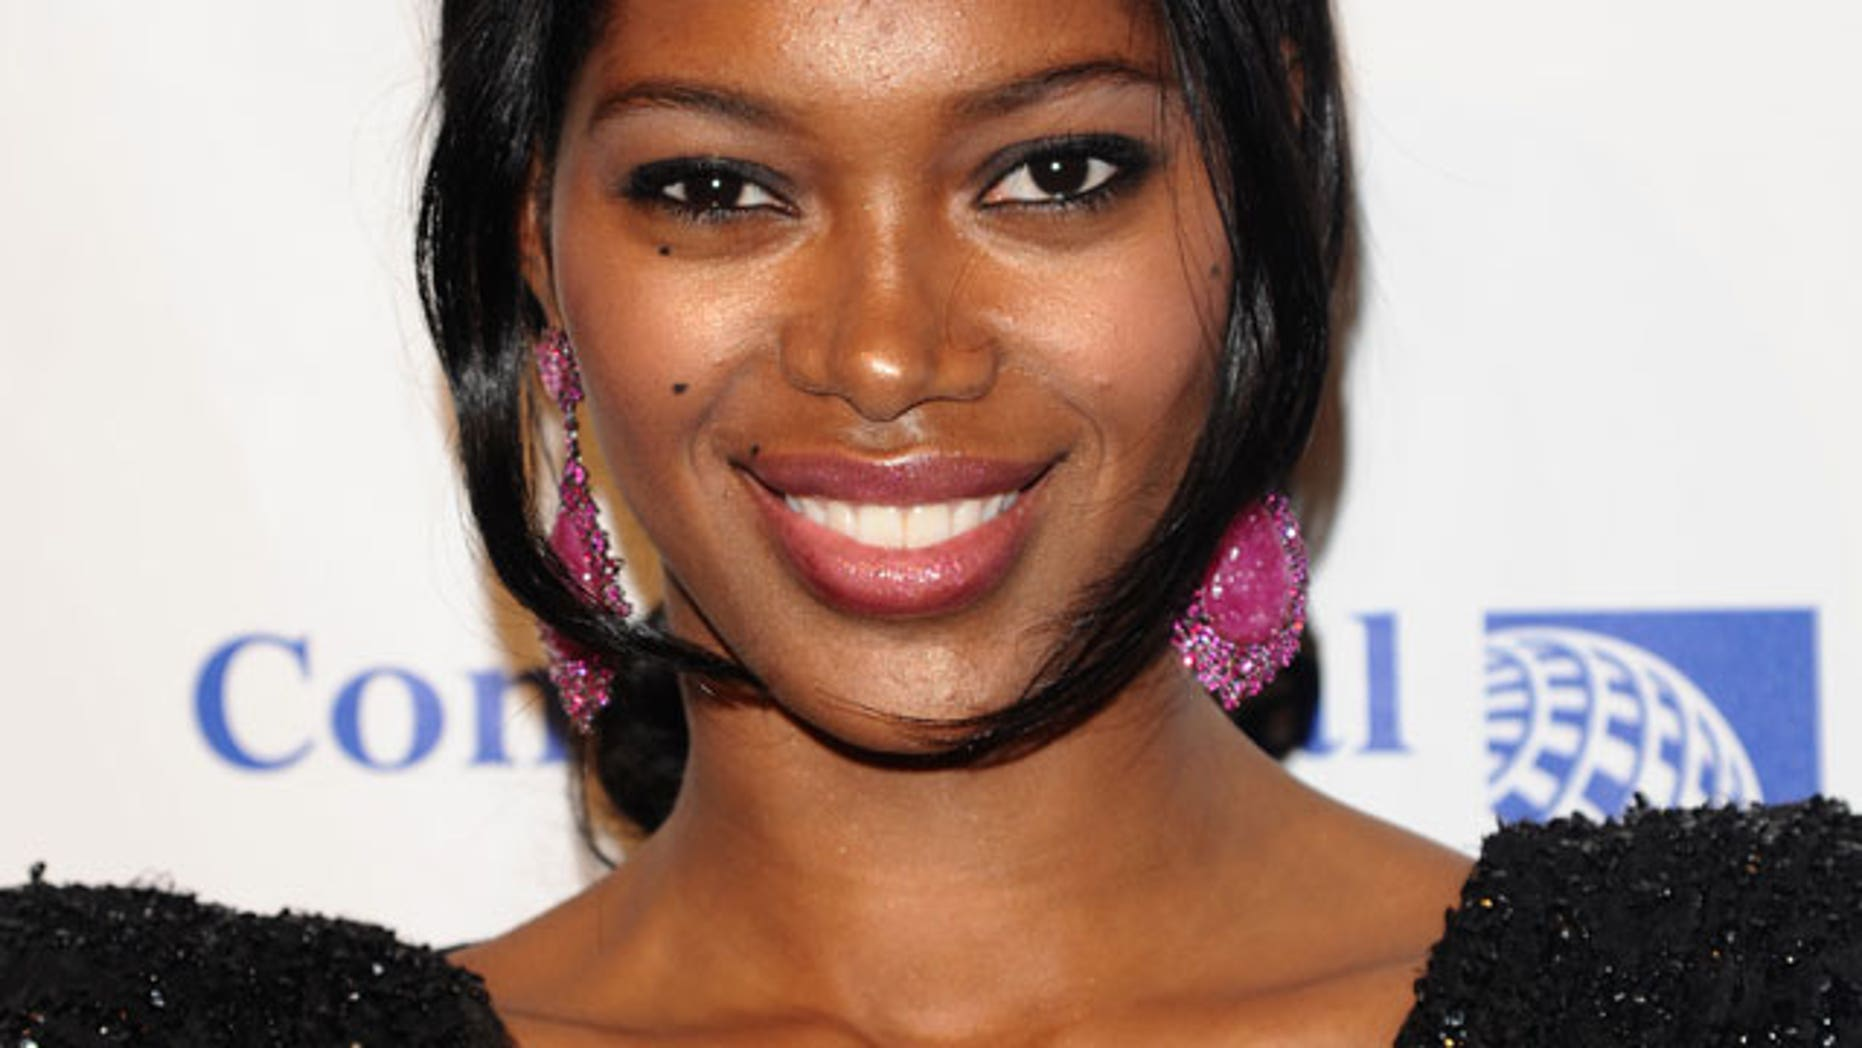 Model Jessica White, Sean Penn's girlfriend, was arrested for assault Saturday.